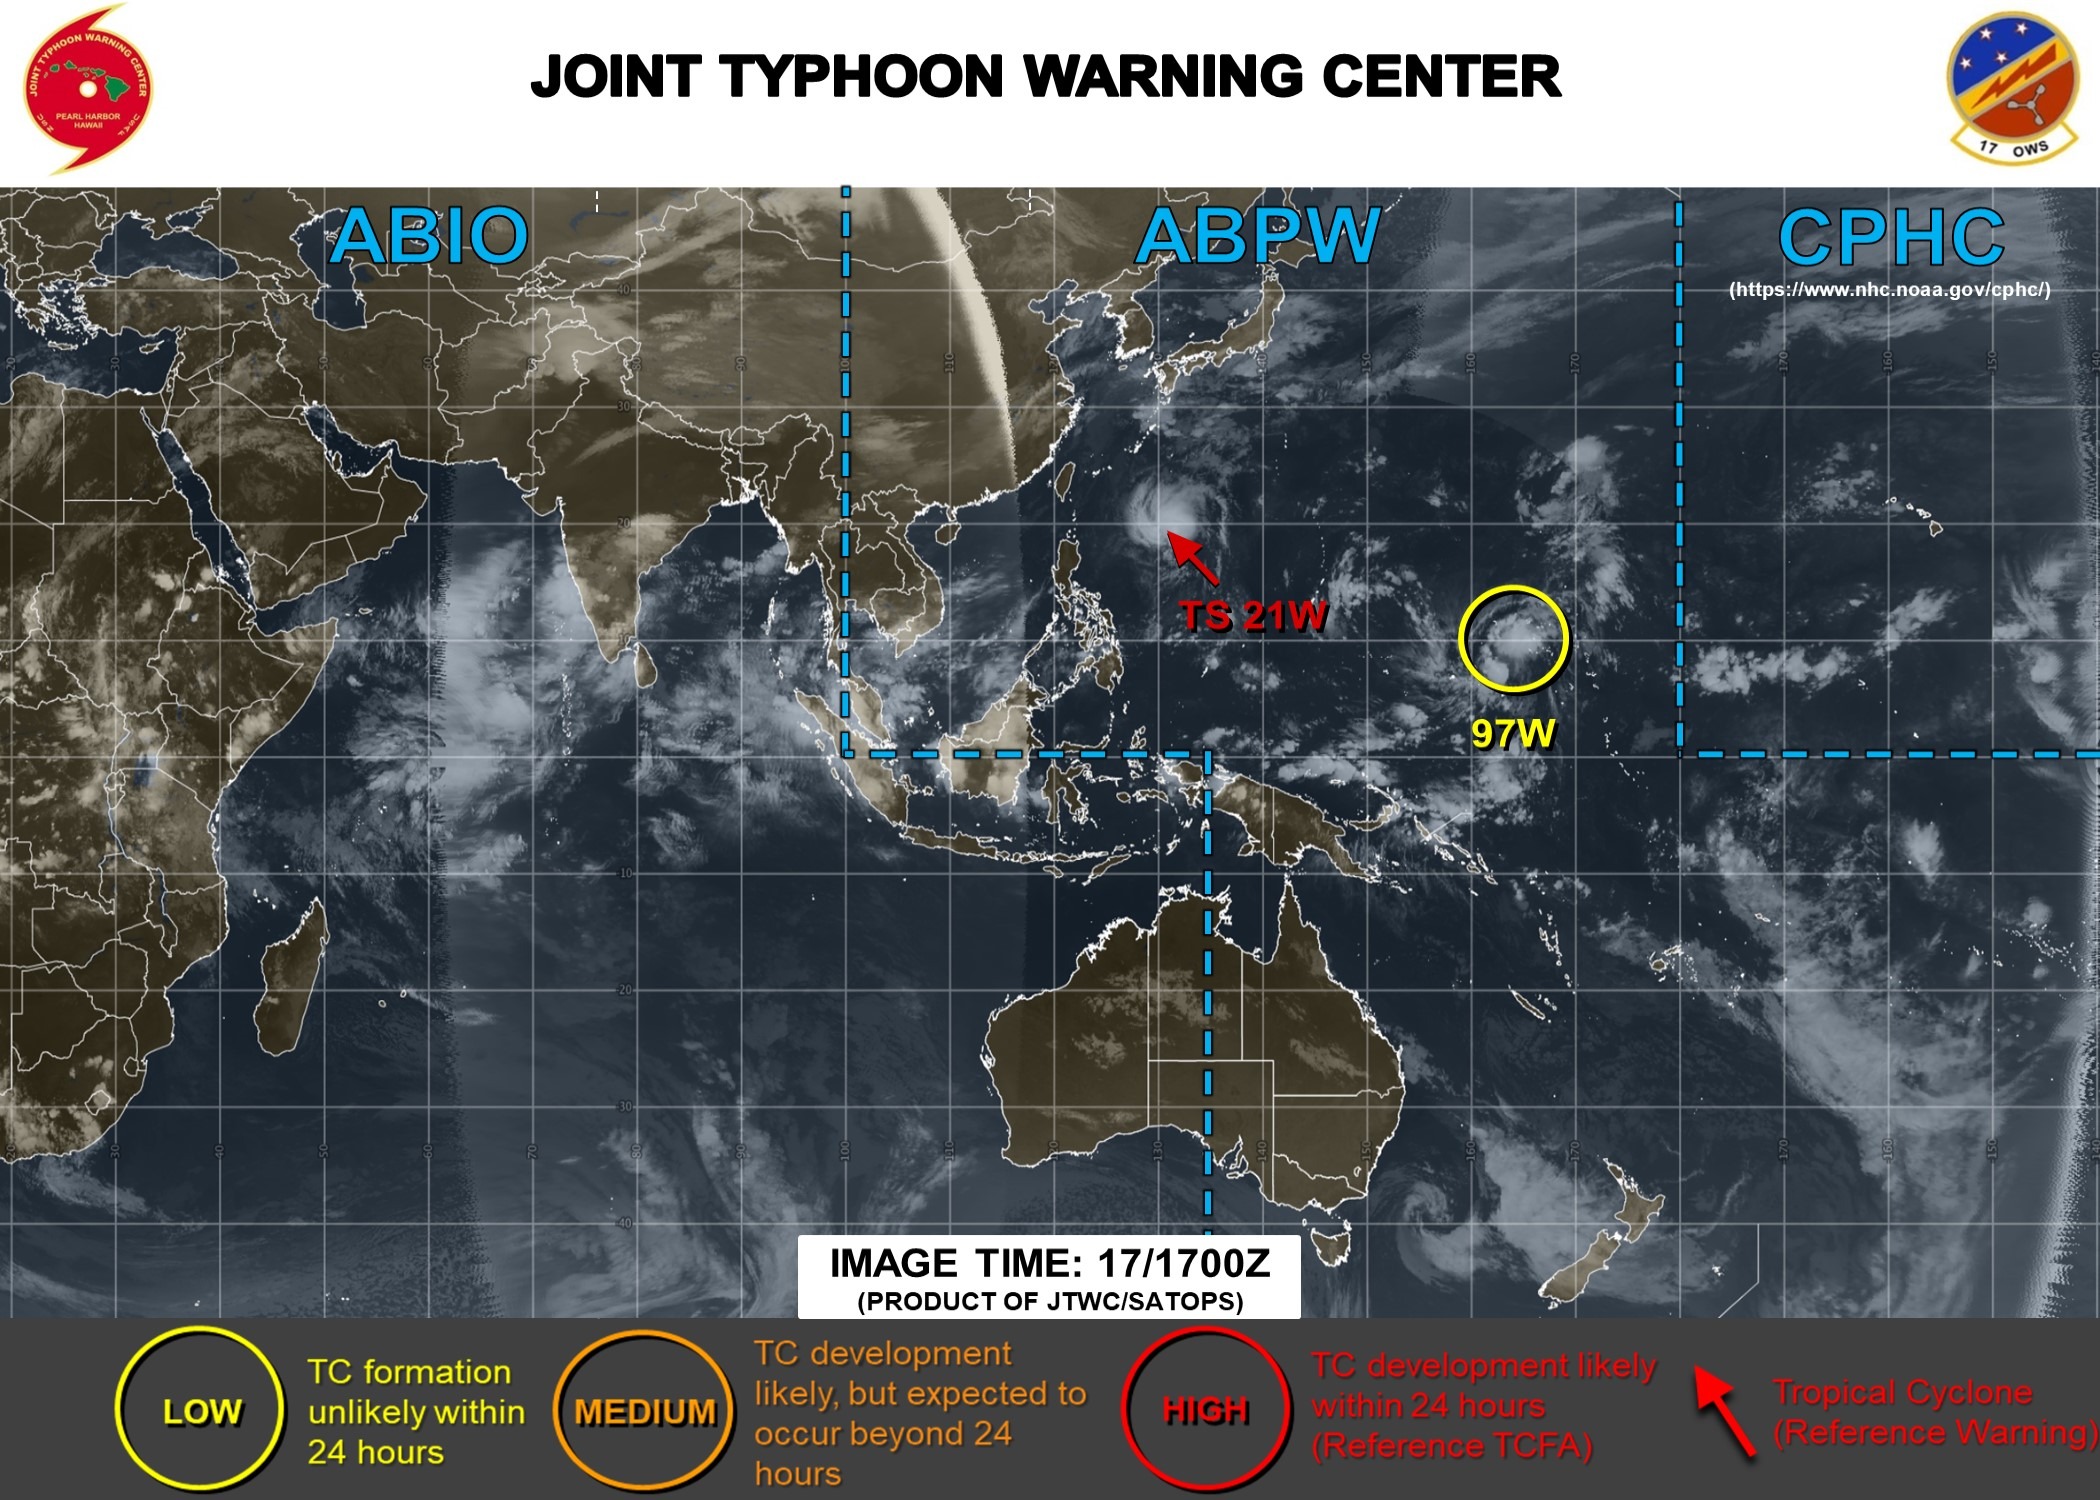 TS Negorui(21W): update and Invest 97W: update